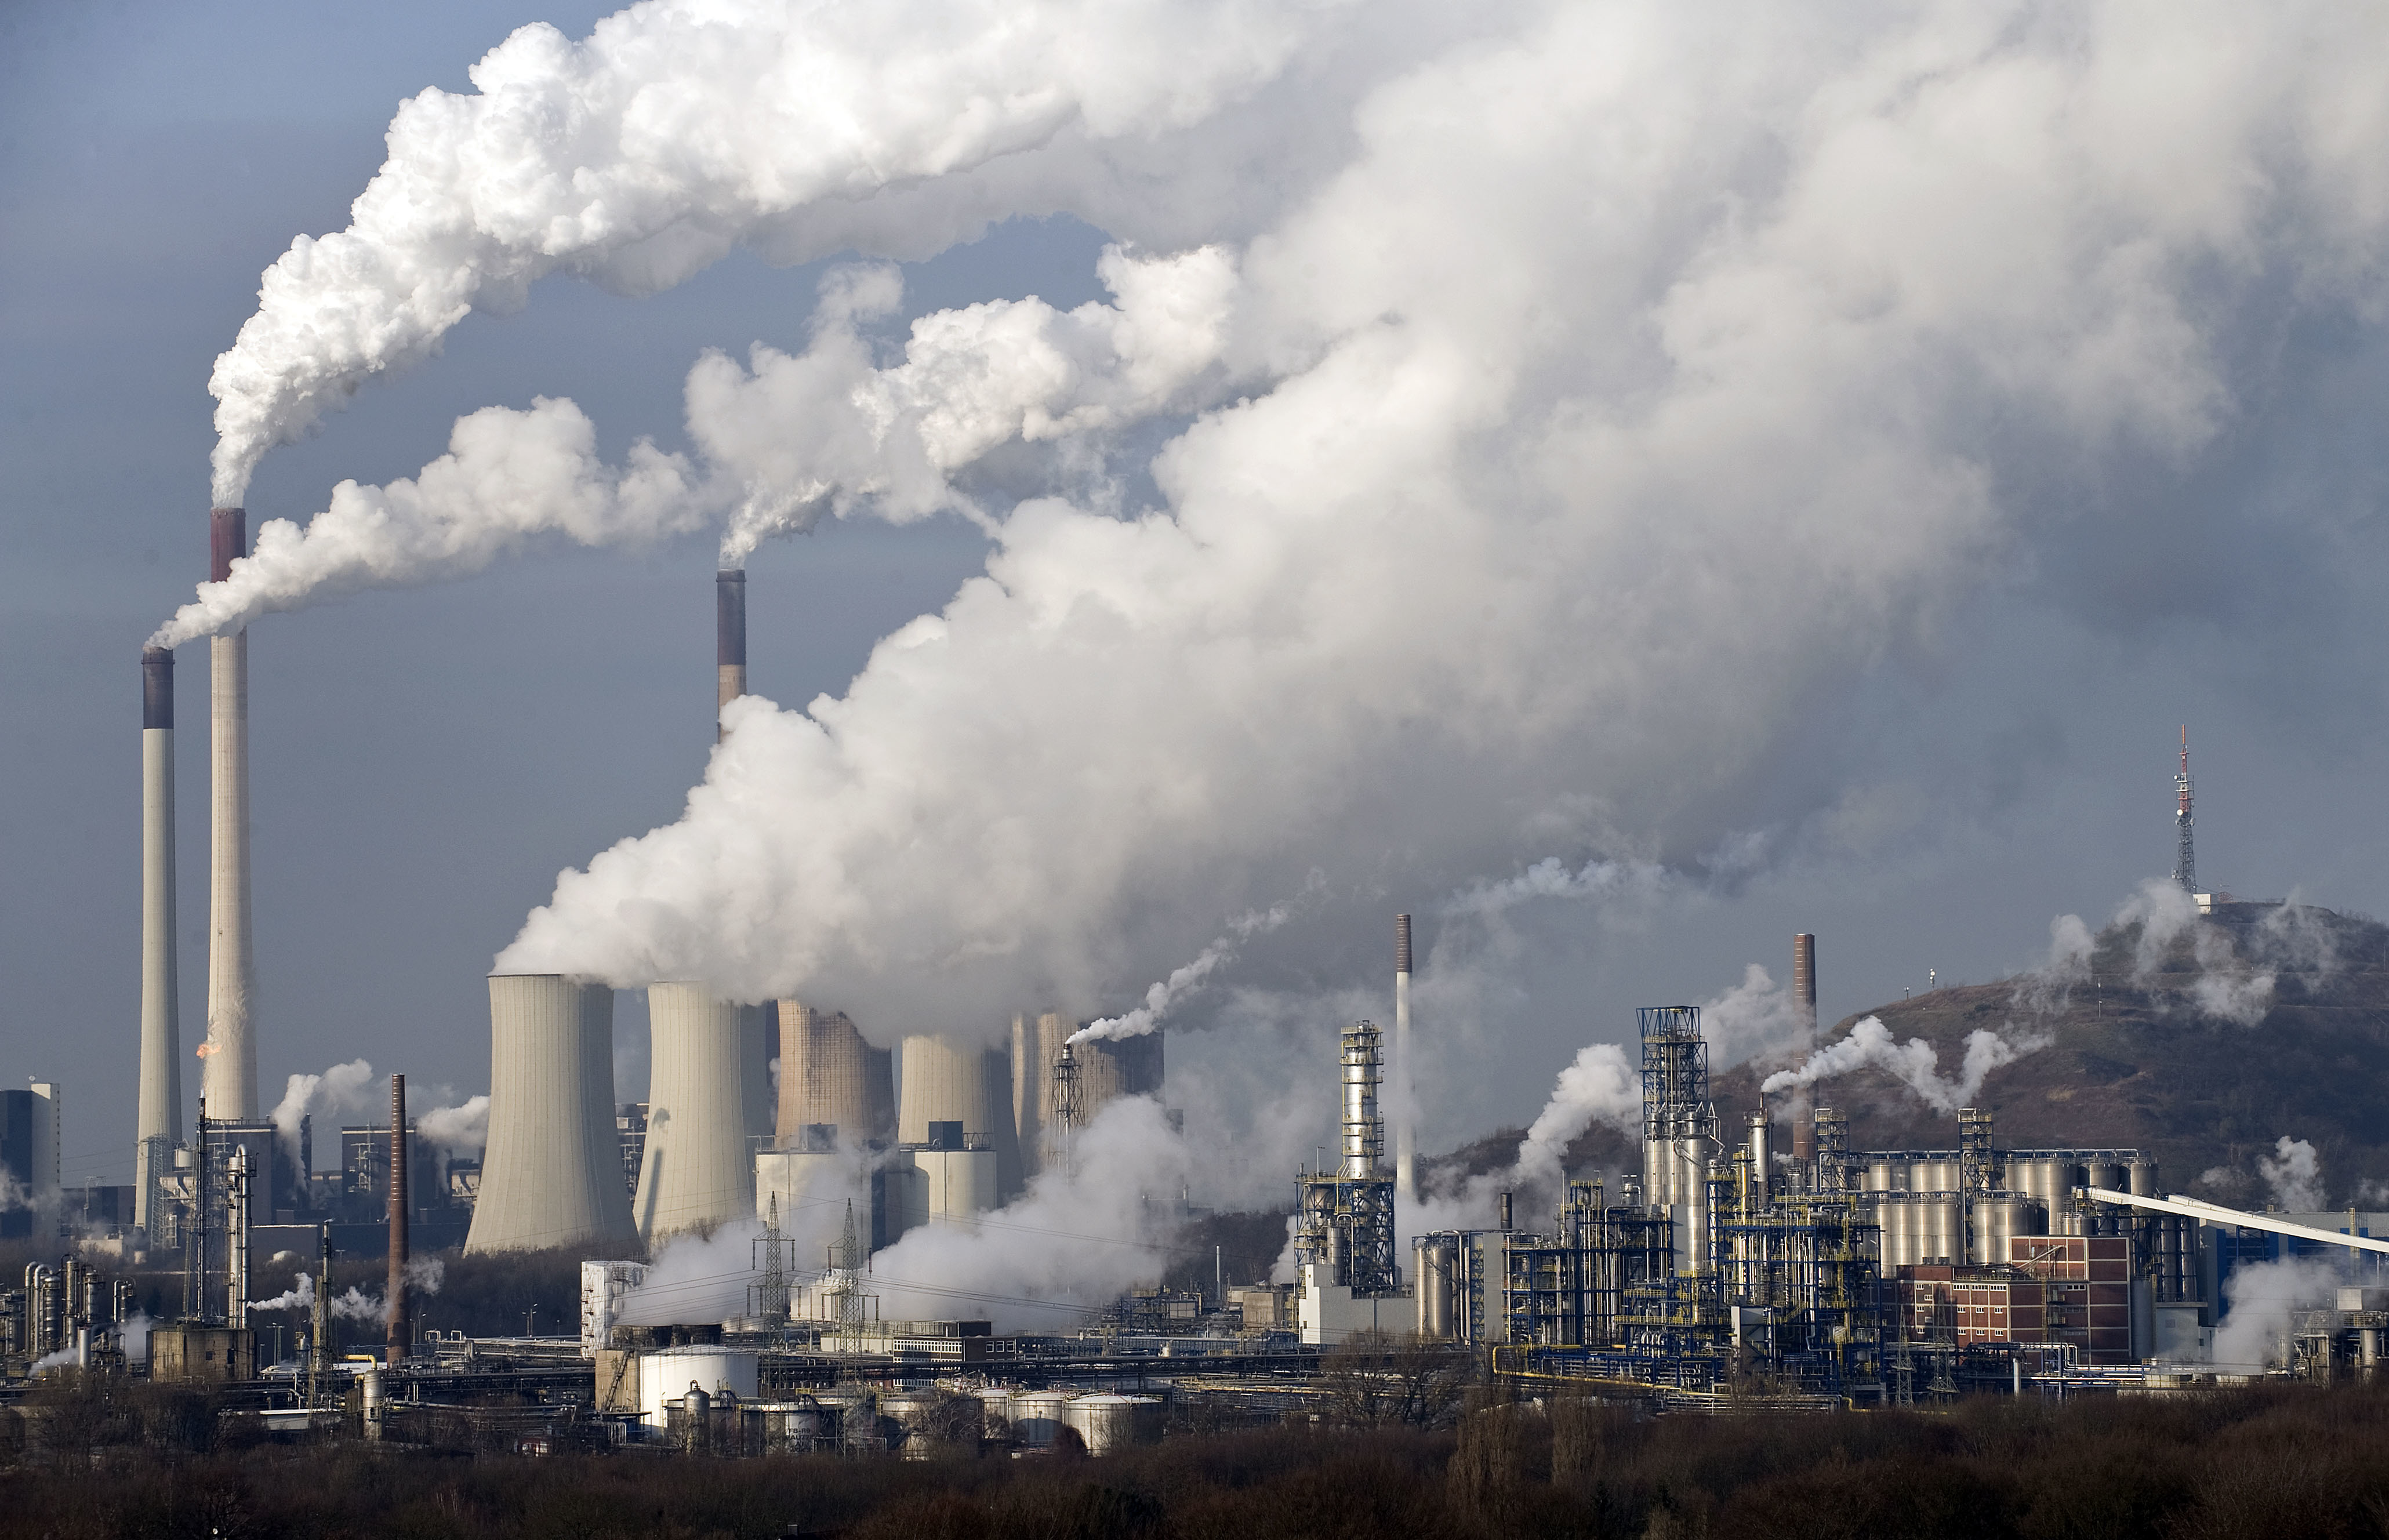 FILE - In this Dec. 16, 2009 file photo, steam and smoke rise from a coal burning power plant in Gelsenkirchen, Germany. The state governors Dietmar Woidke of Brandenburg, Michael Kretschmer of Saxony, Reiner Haseloff of Saxony-Anhalt and Armin Laschet of North Rhine-Westphalia meet in Berlin for the adoption by the Bundestag and Bundesrat of the laws on coal phase-out and structural strengthening in the affected federal states.